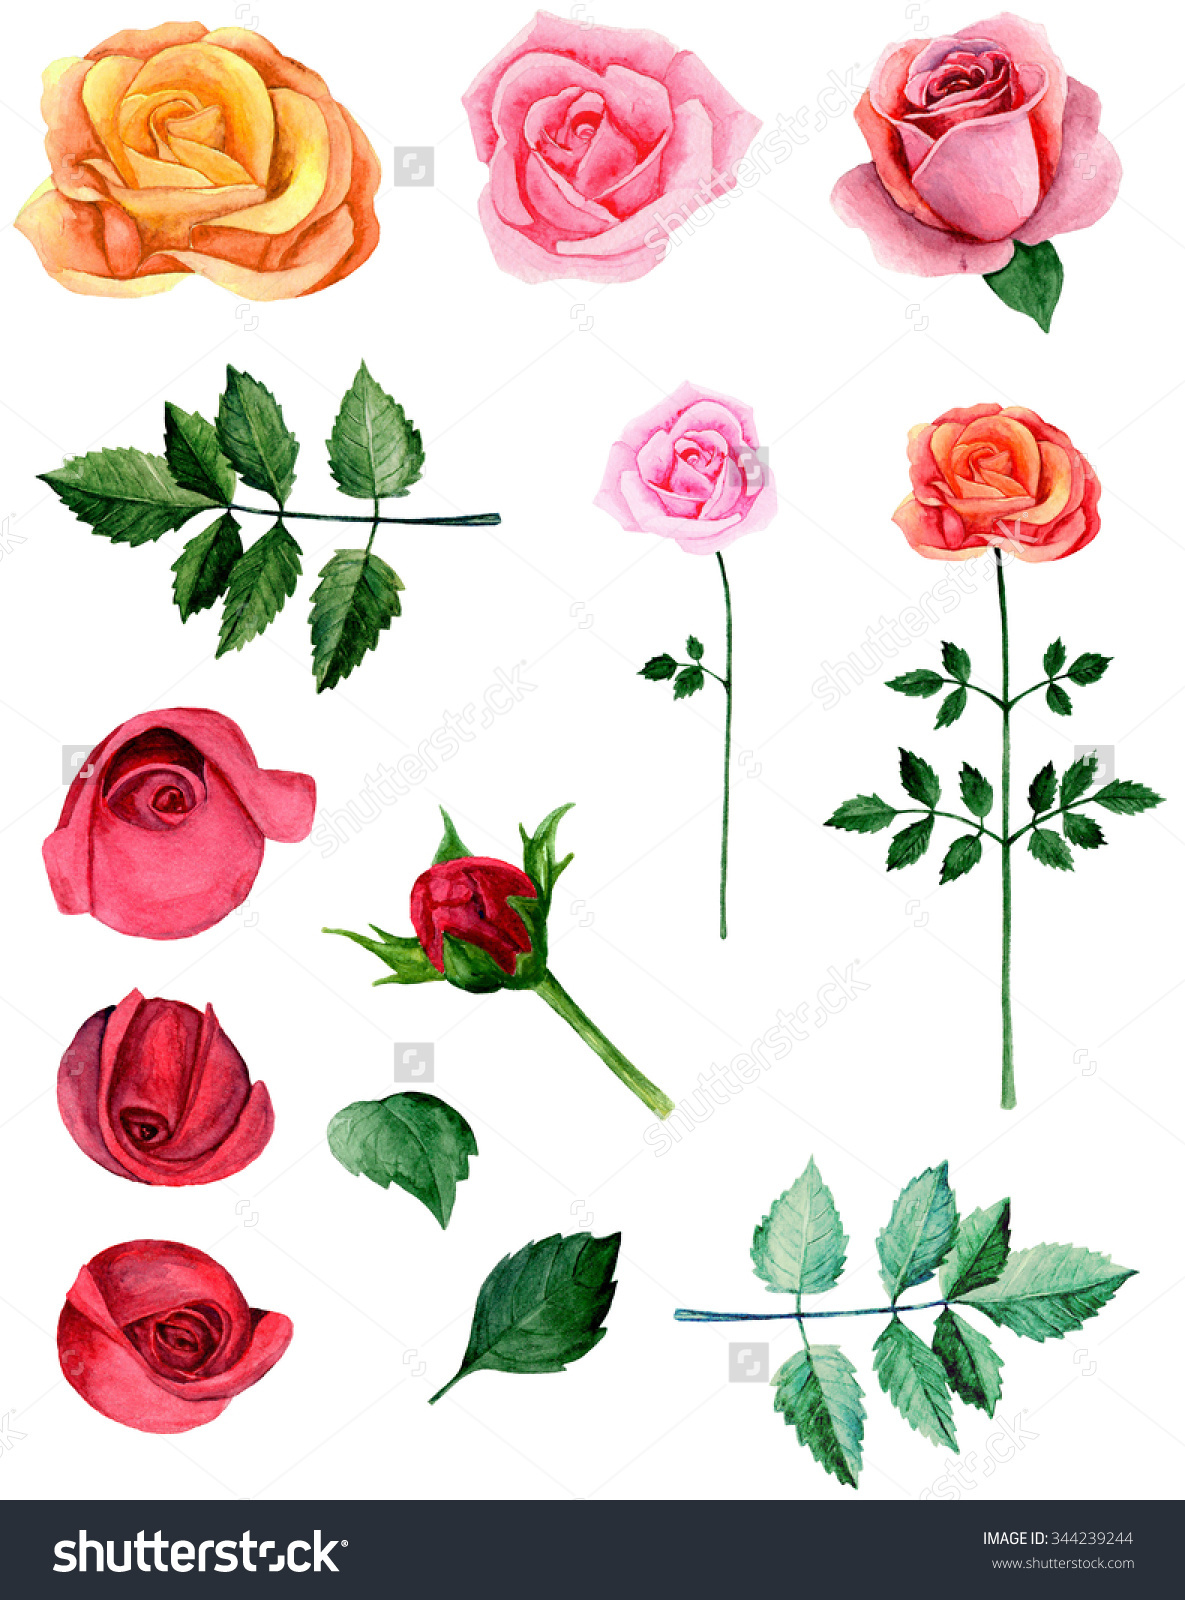 Watercolor Roses Clipart Botany Clip Art Stock Illustration.